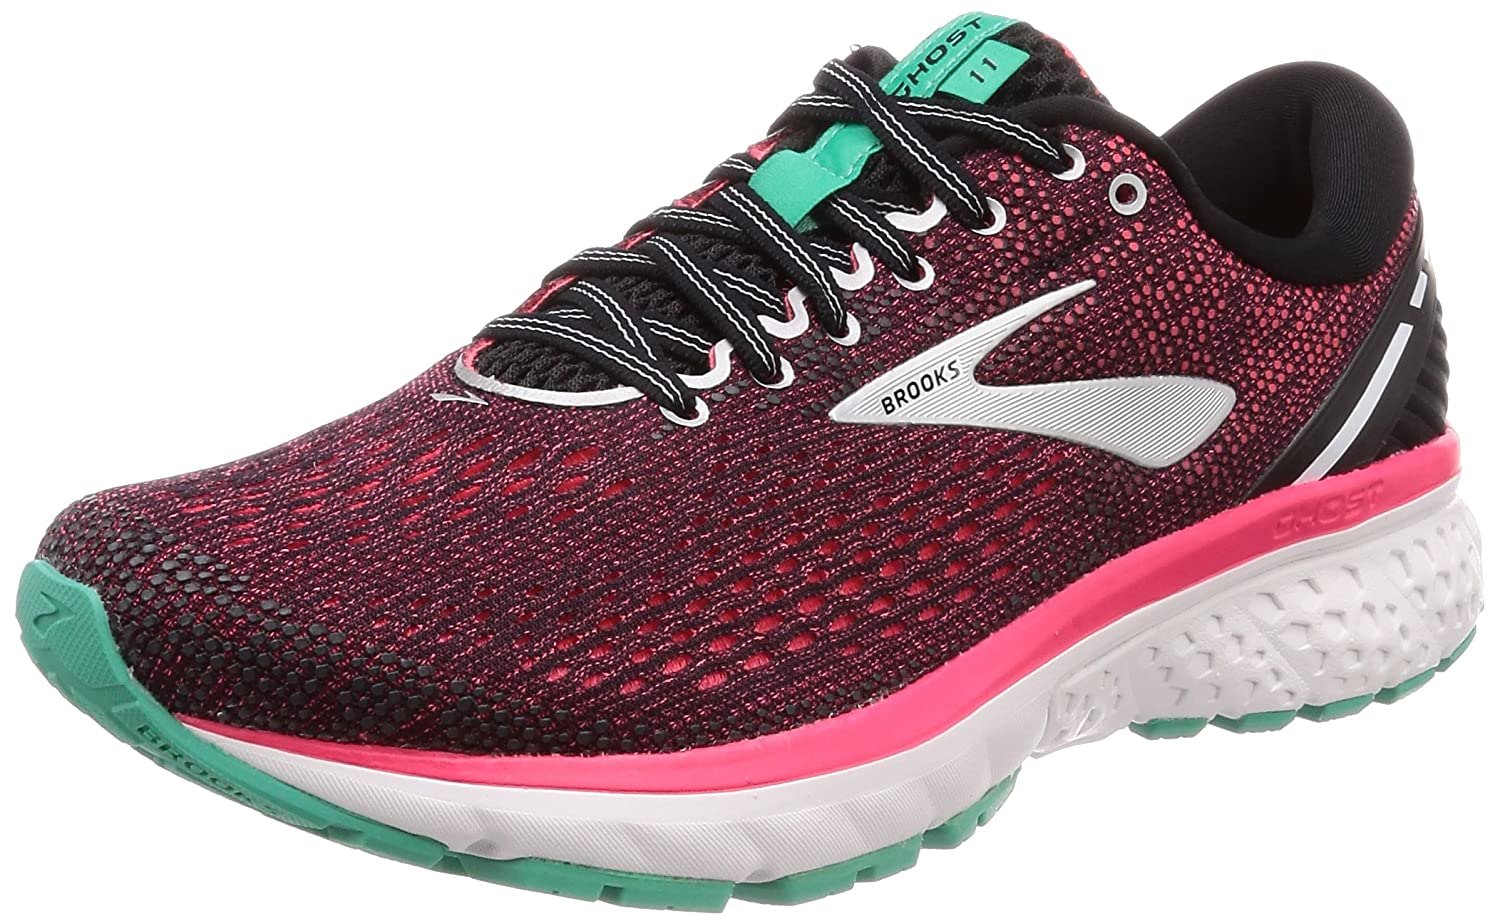 Brooks Women's Ghost 11 Running Sneakers B078BS39C5 5 B(M) US|Black/Pink/Aqua